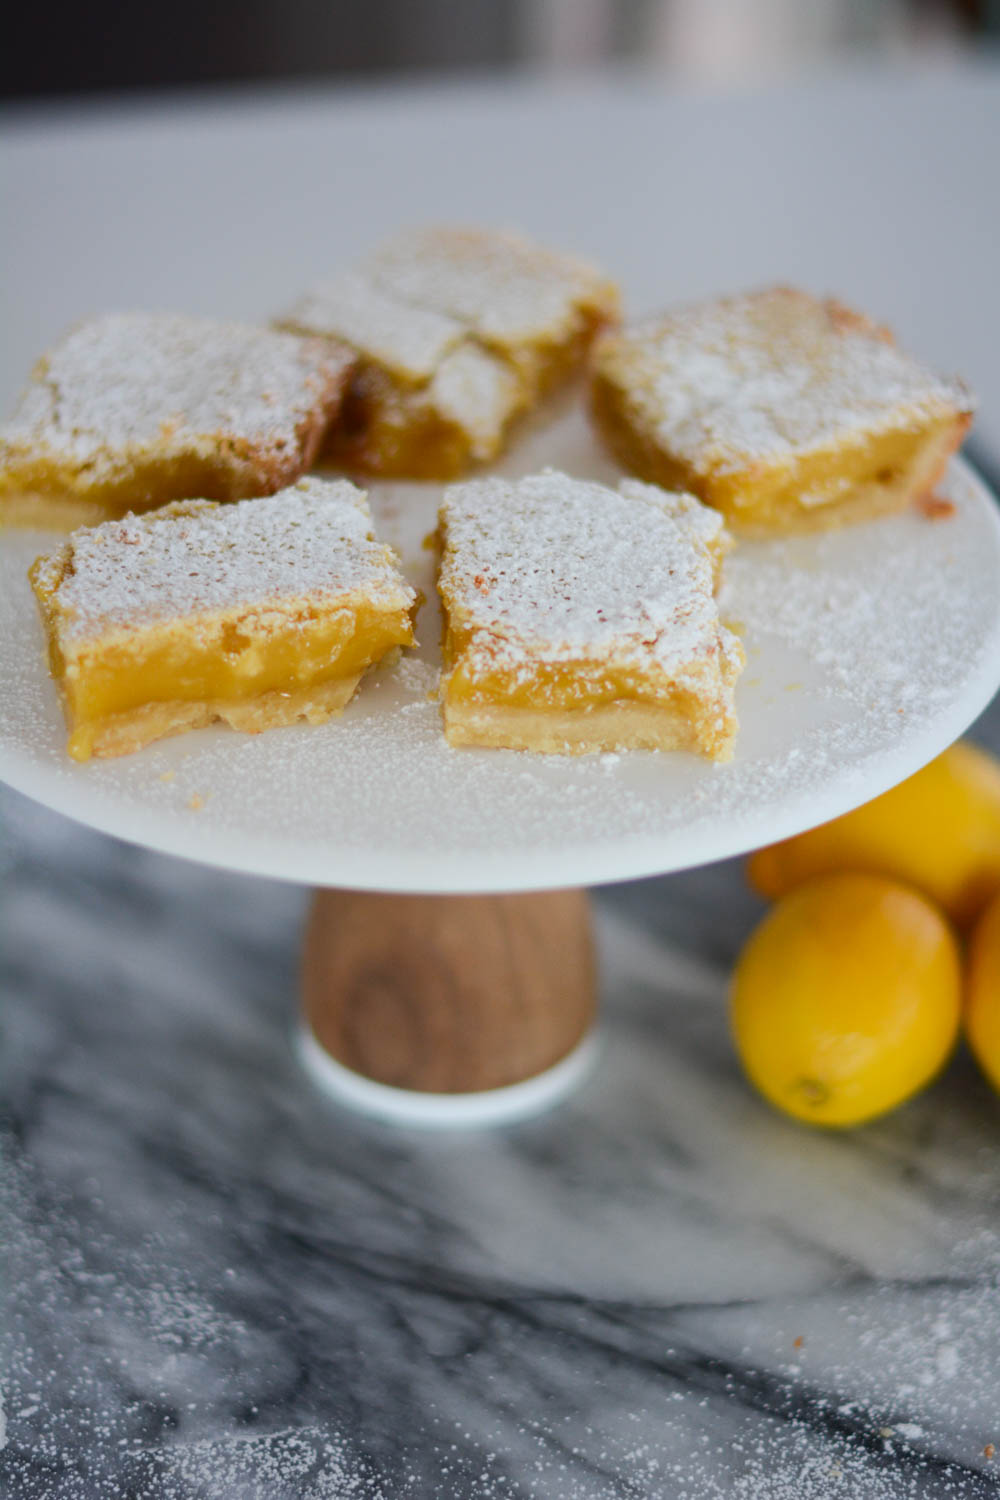 lemon-bar-recipe-1.jpg